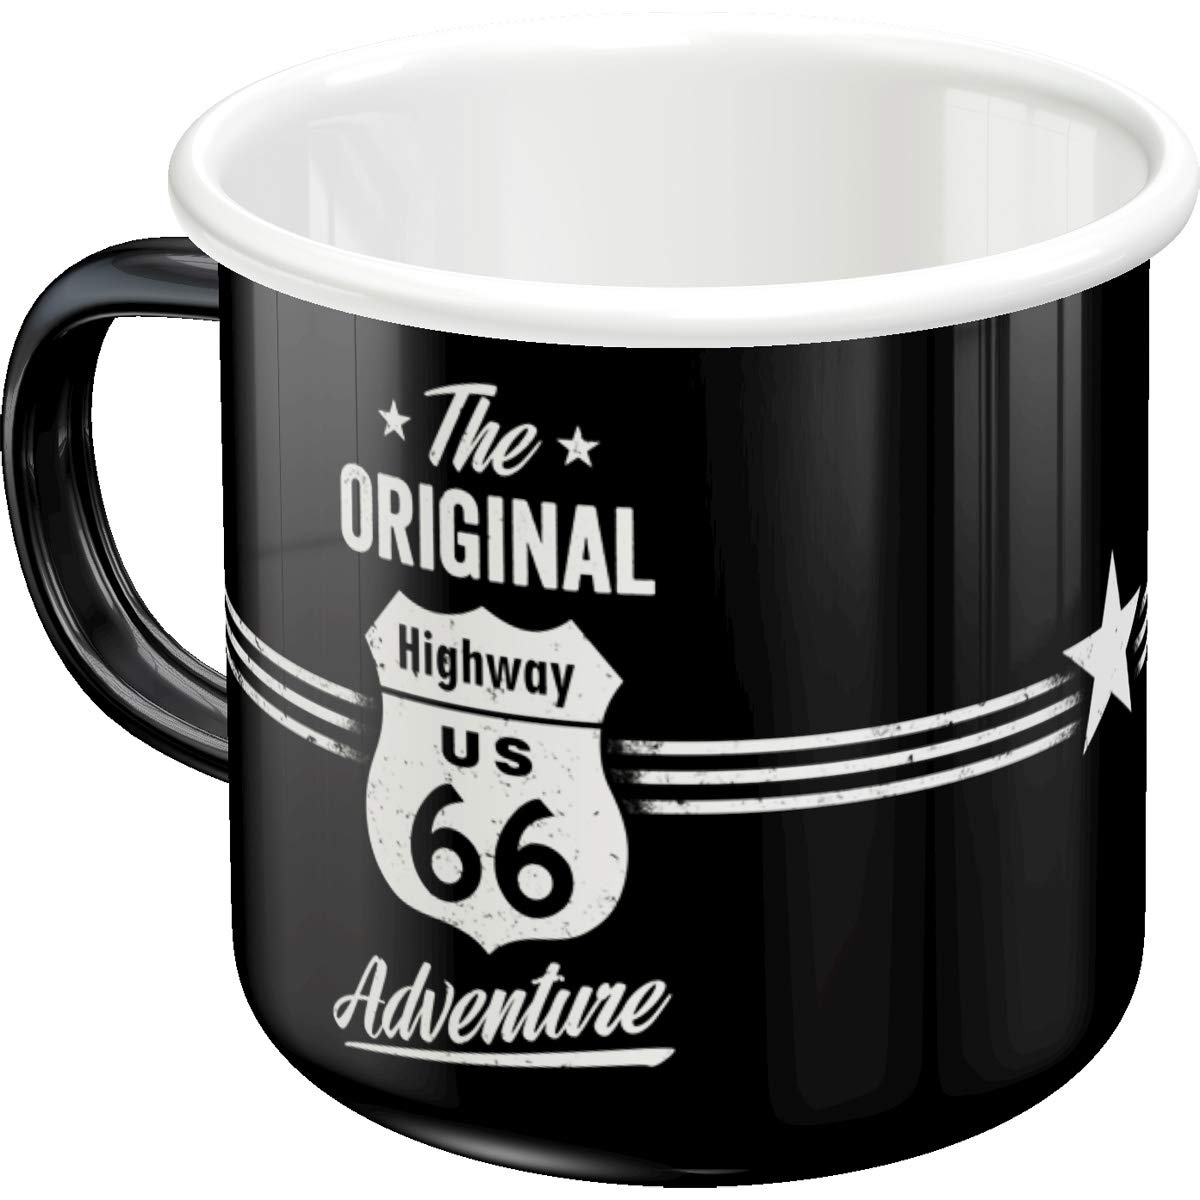 Nostalgic-Art 43204 Highway 66 The Original Adventure | Rétro Tasse émaillée | Vintage Cadeau Tasse | Outdoor Harnais, Multicolore, 8 x 8 x 8 cm